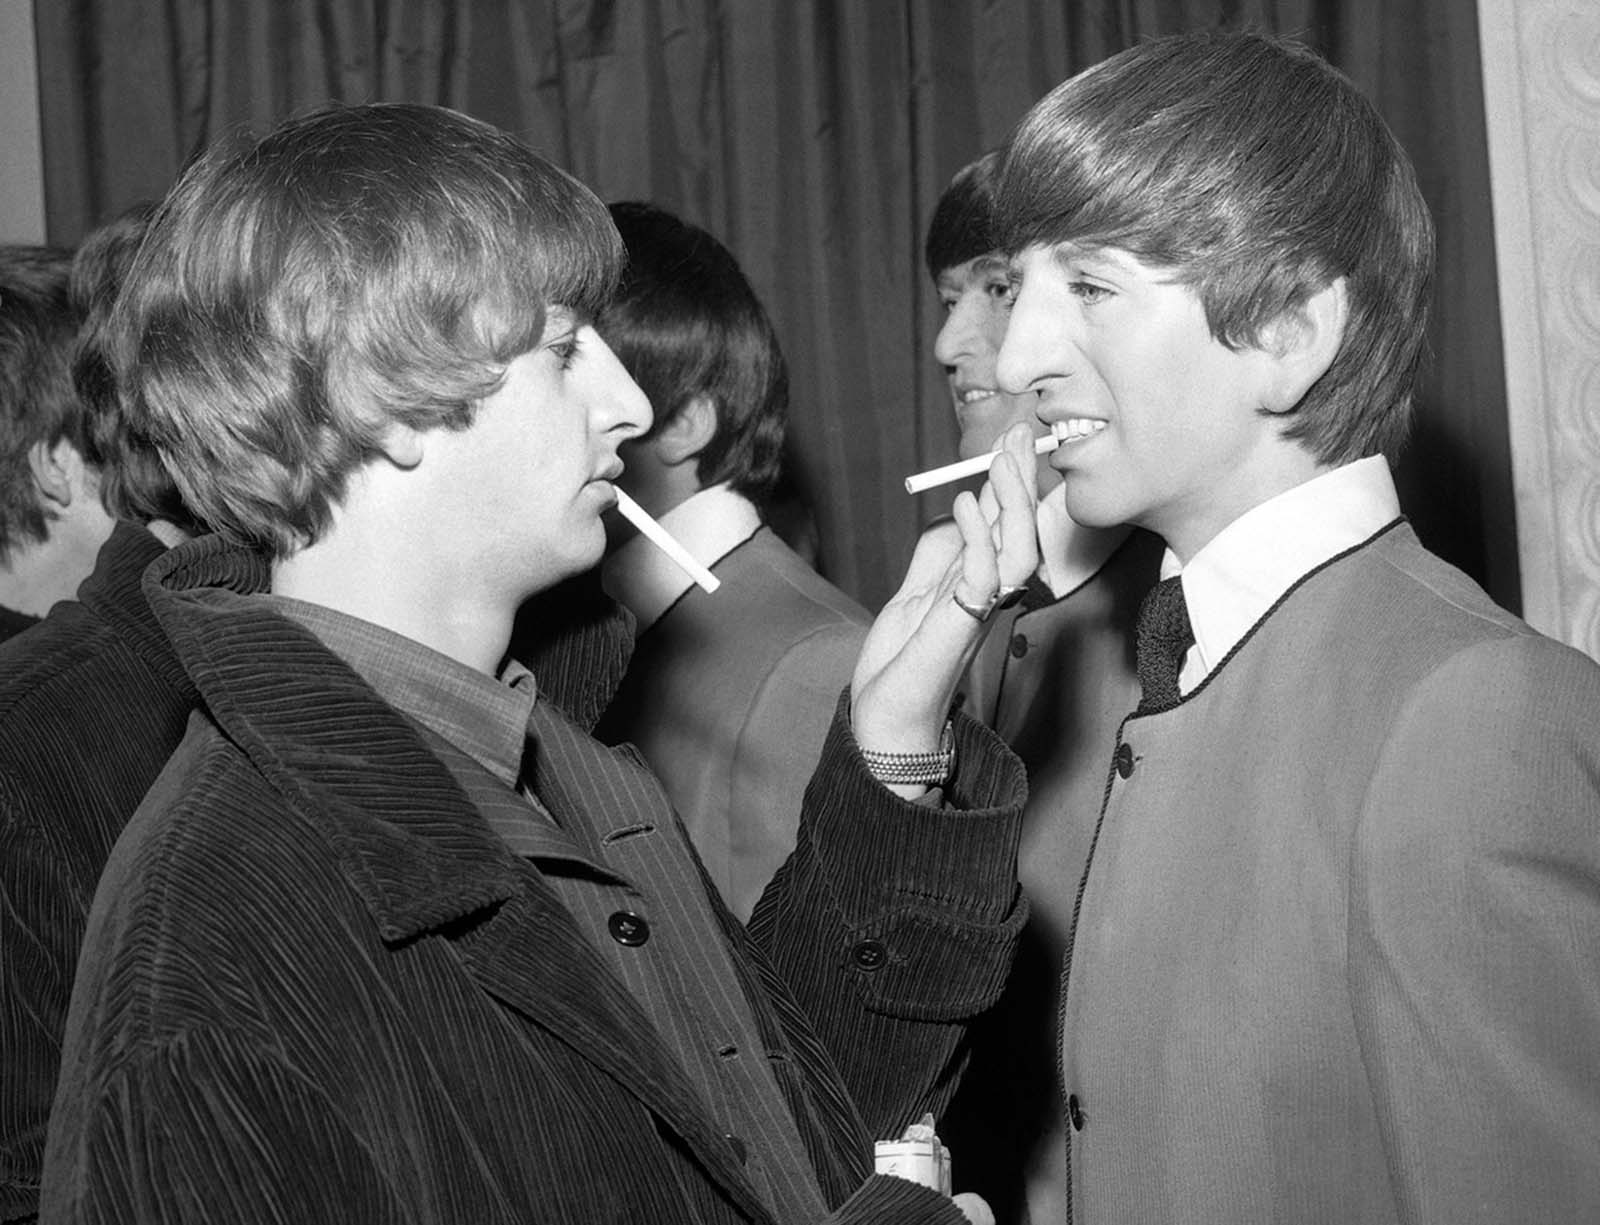 Beatle drummer Ringo Starr eases the pain on a wax likeness of himself with a cigarette, during the unveiling ceremony for four wax models of the Beatles at Madame Tussaud's Waxworks, in London, England, on April 29, 1964.